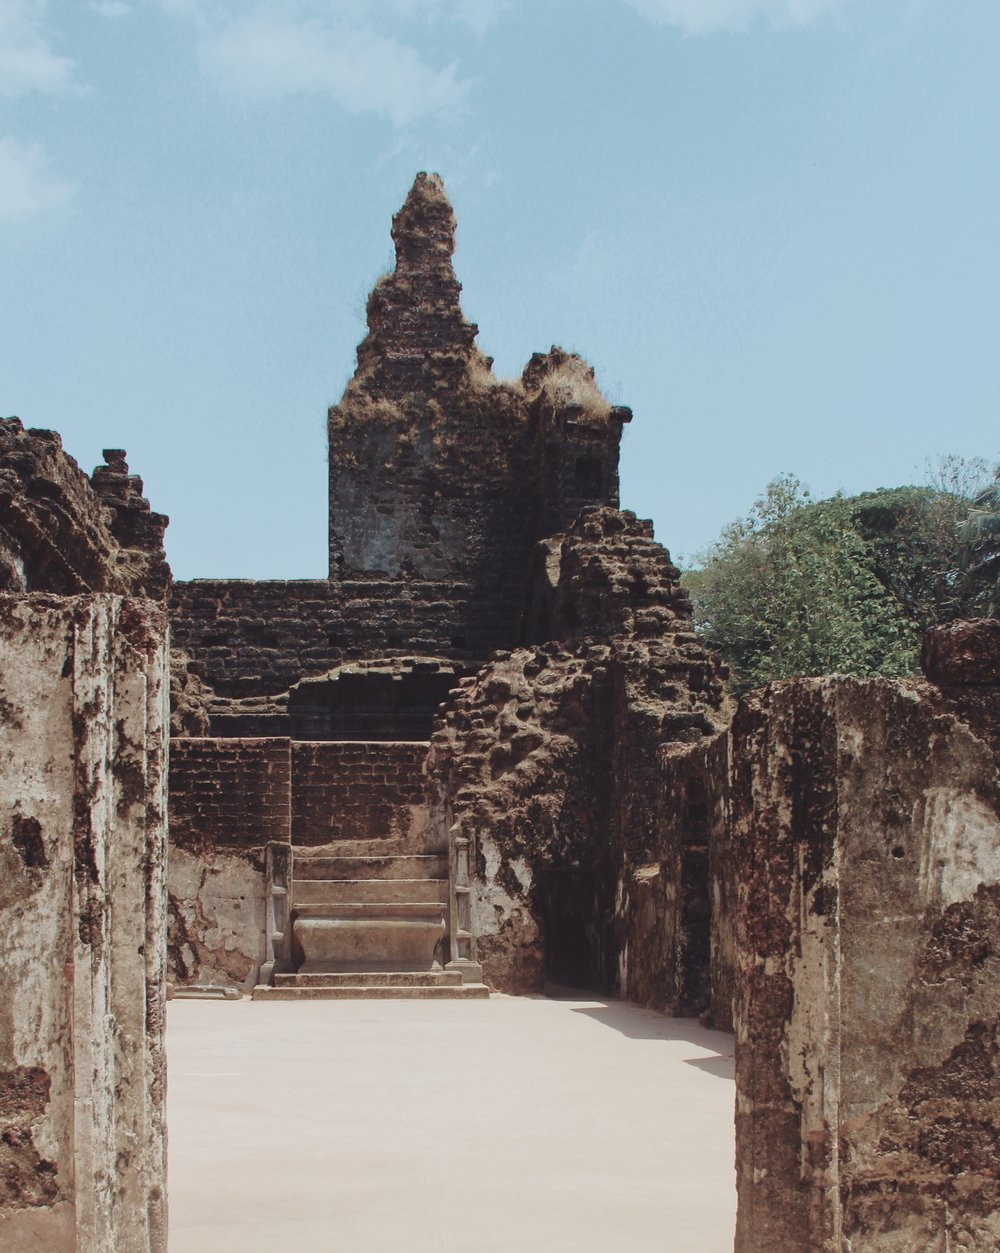 Beautiful ruins in Goa that were made openly accessible to all through the installation of a continuous concrete floor throughout.